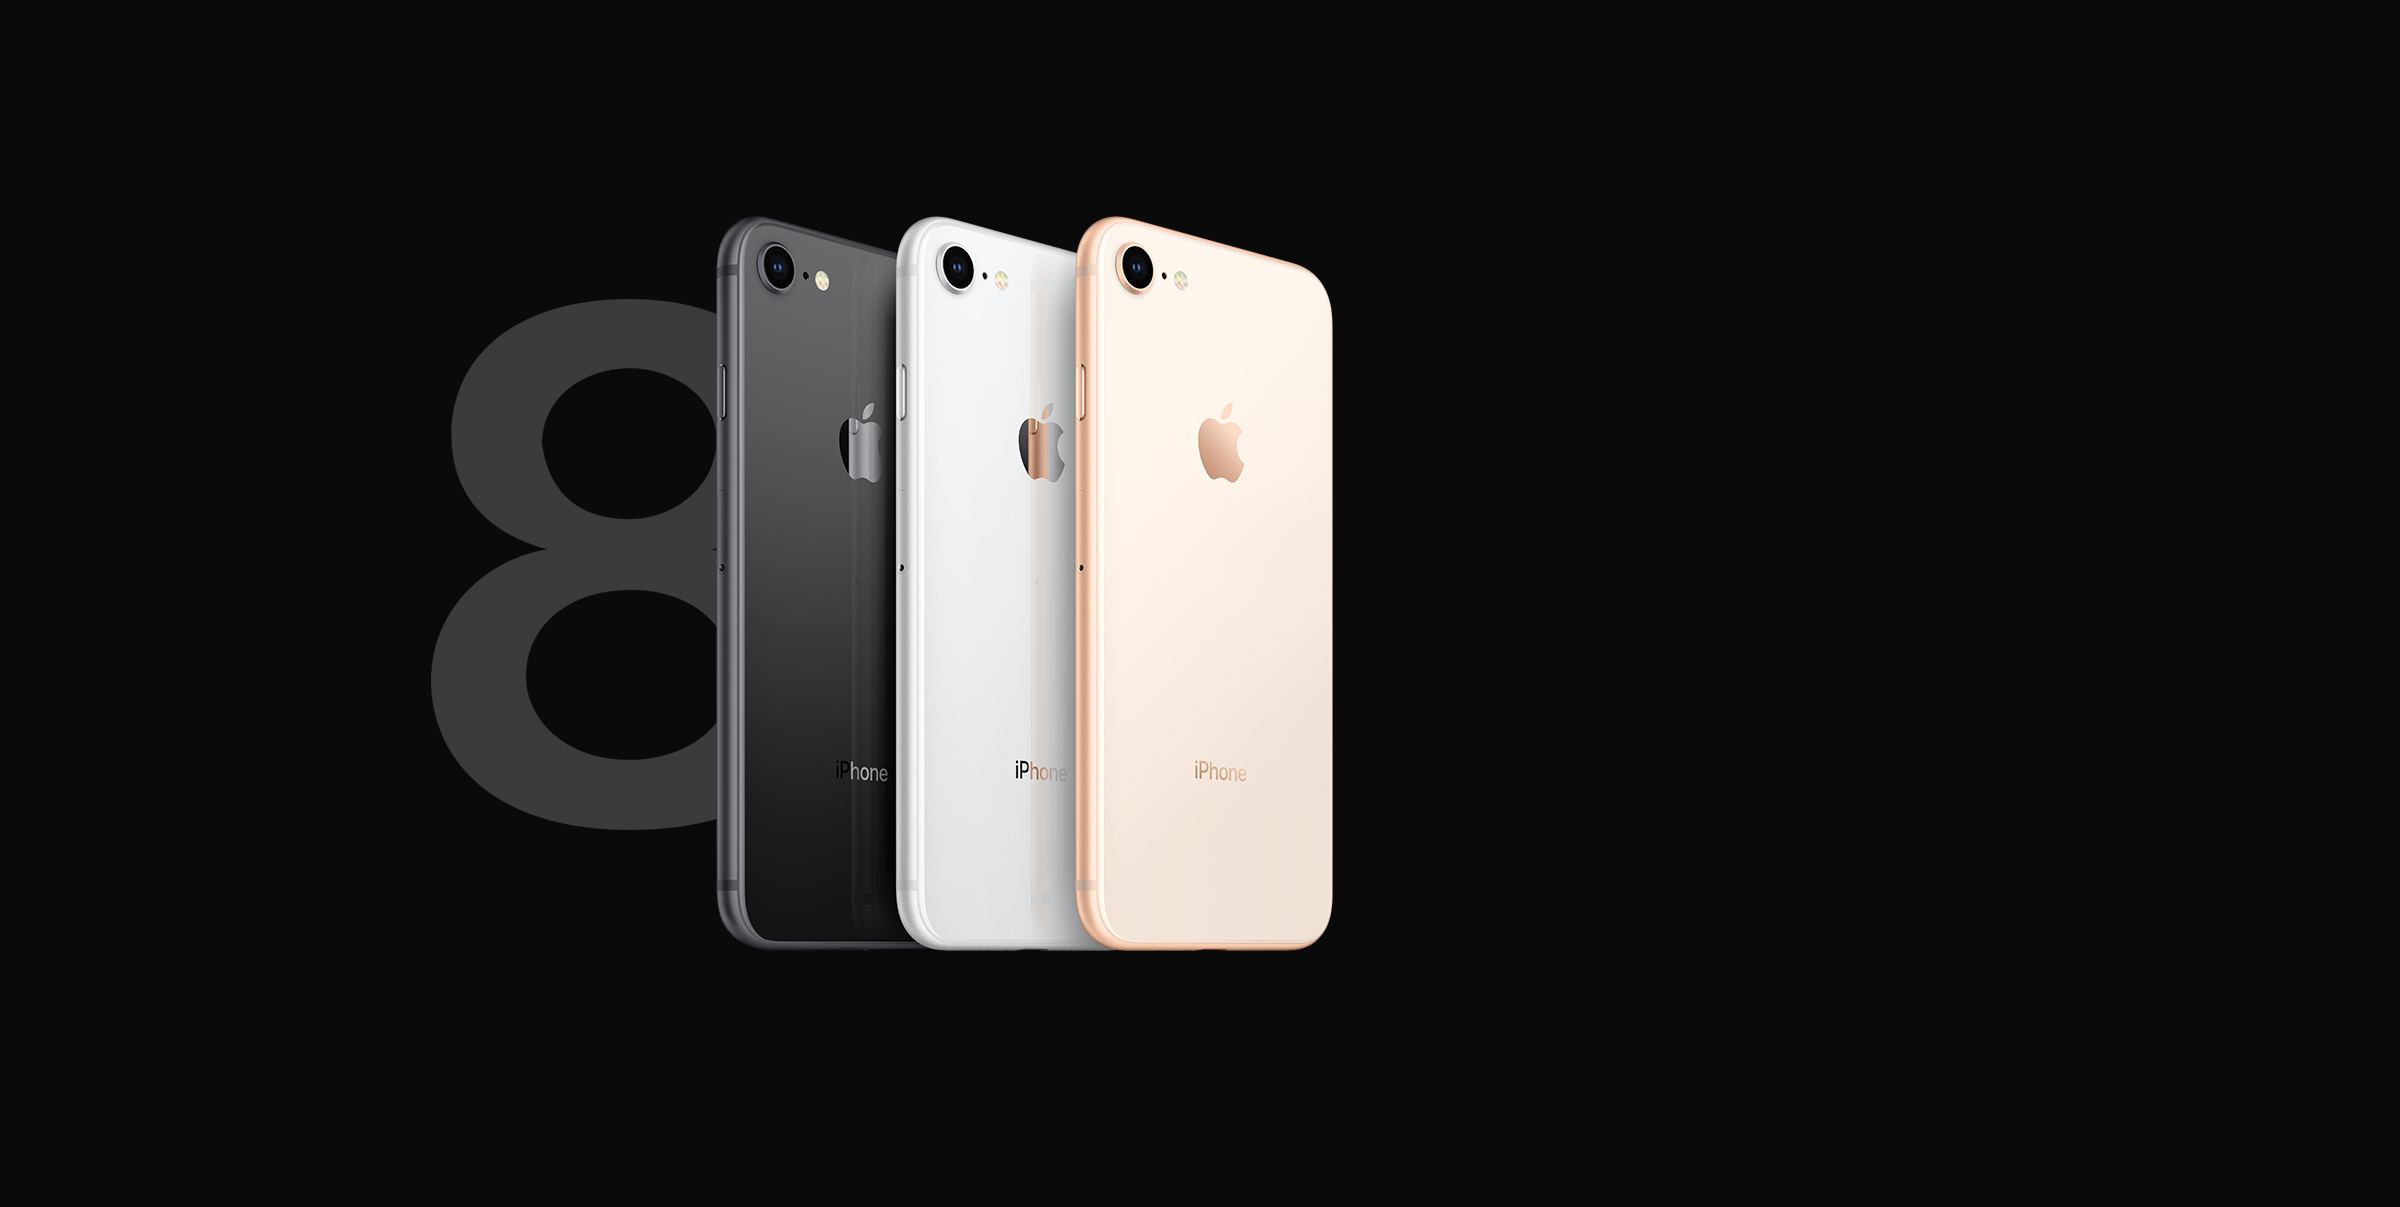 IPhone 8 y IPhone 8 Plus llegan pronto al Perú gracias a Entel